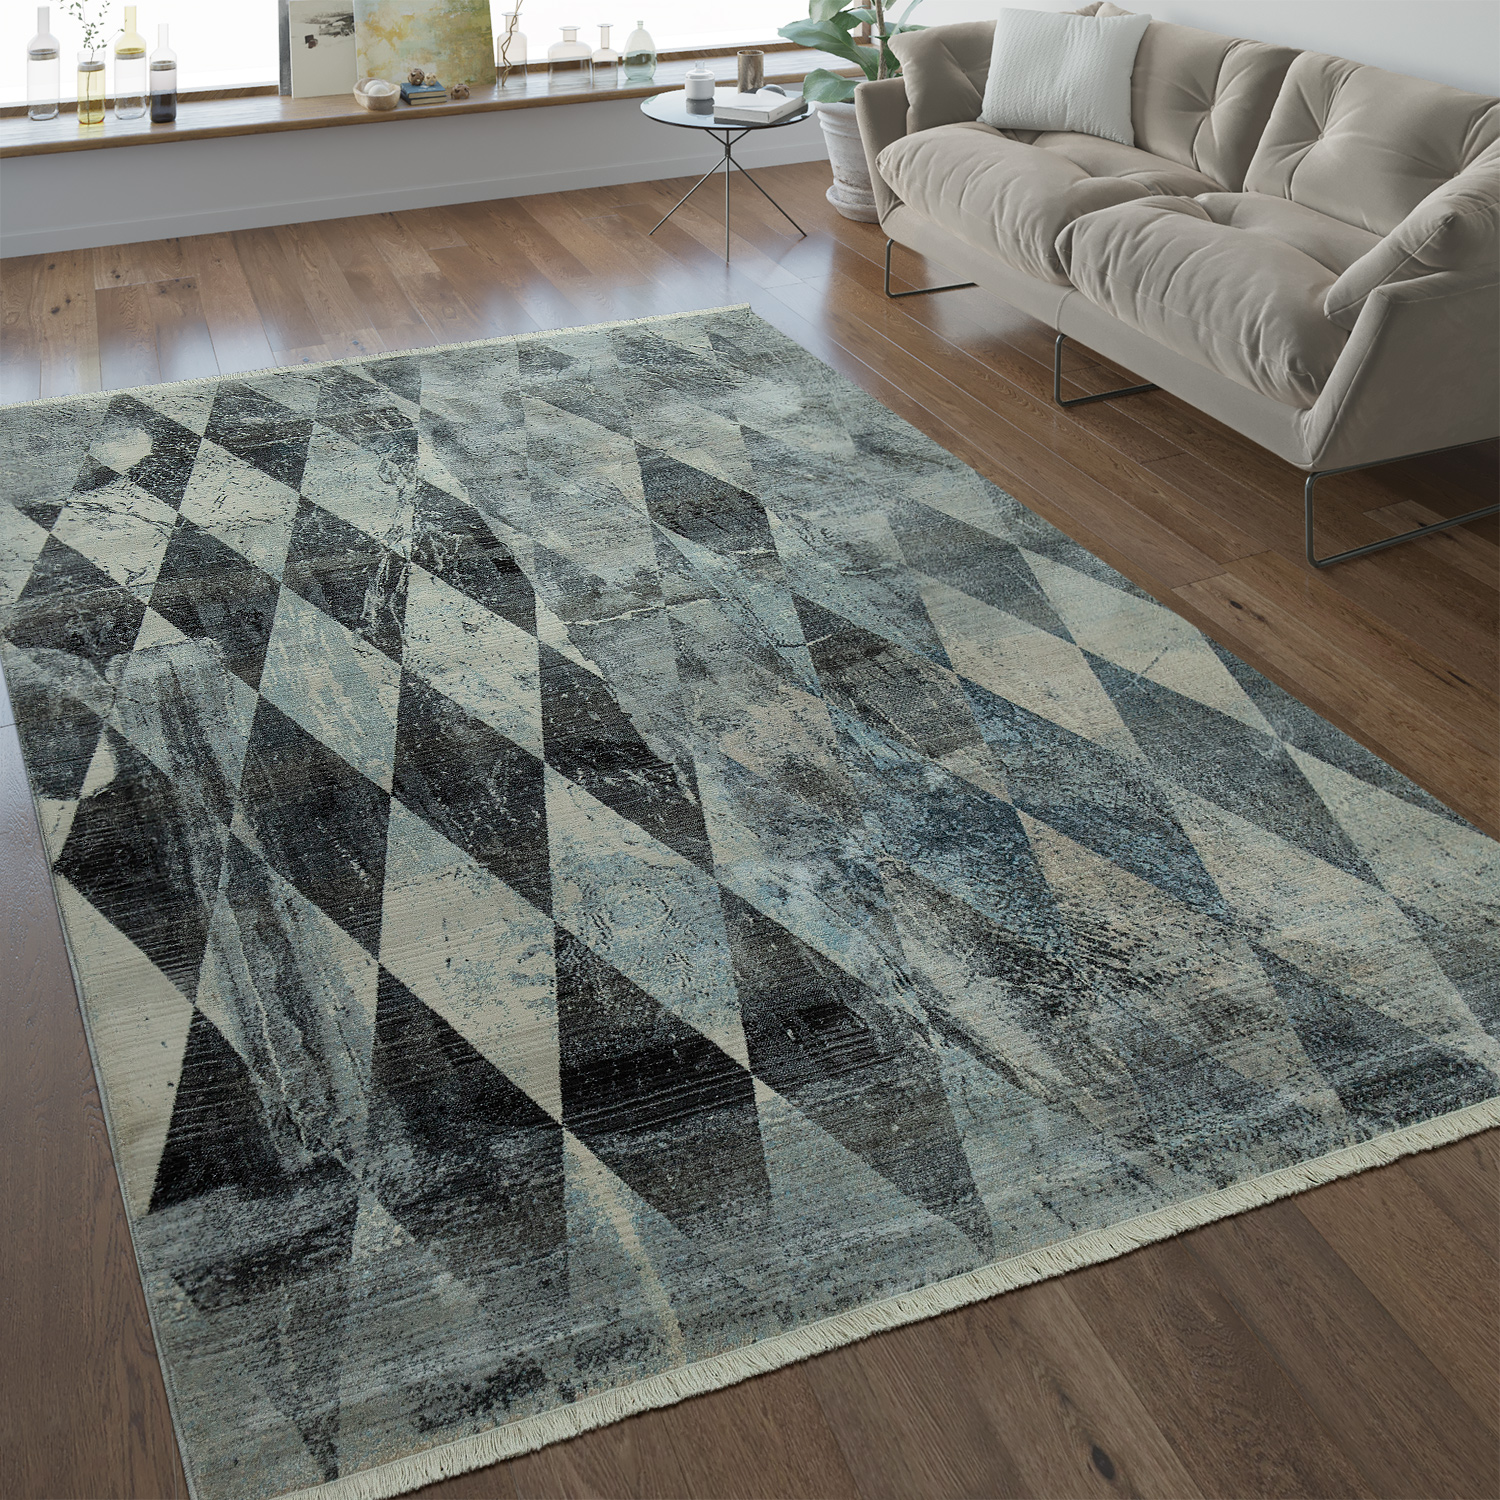 Designer Rug Diamond Pattern Silver Grey